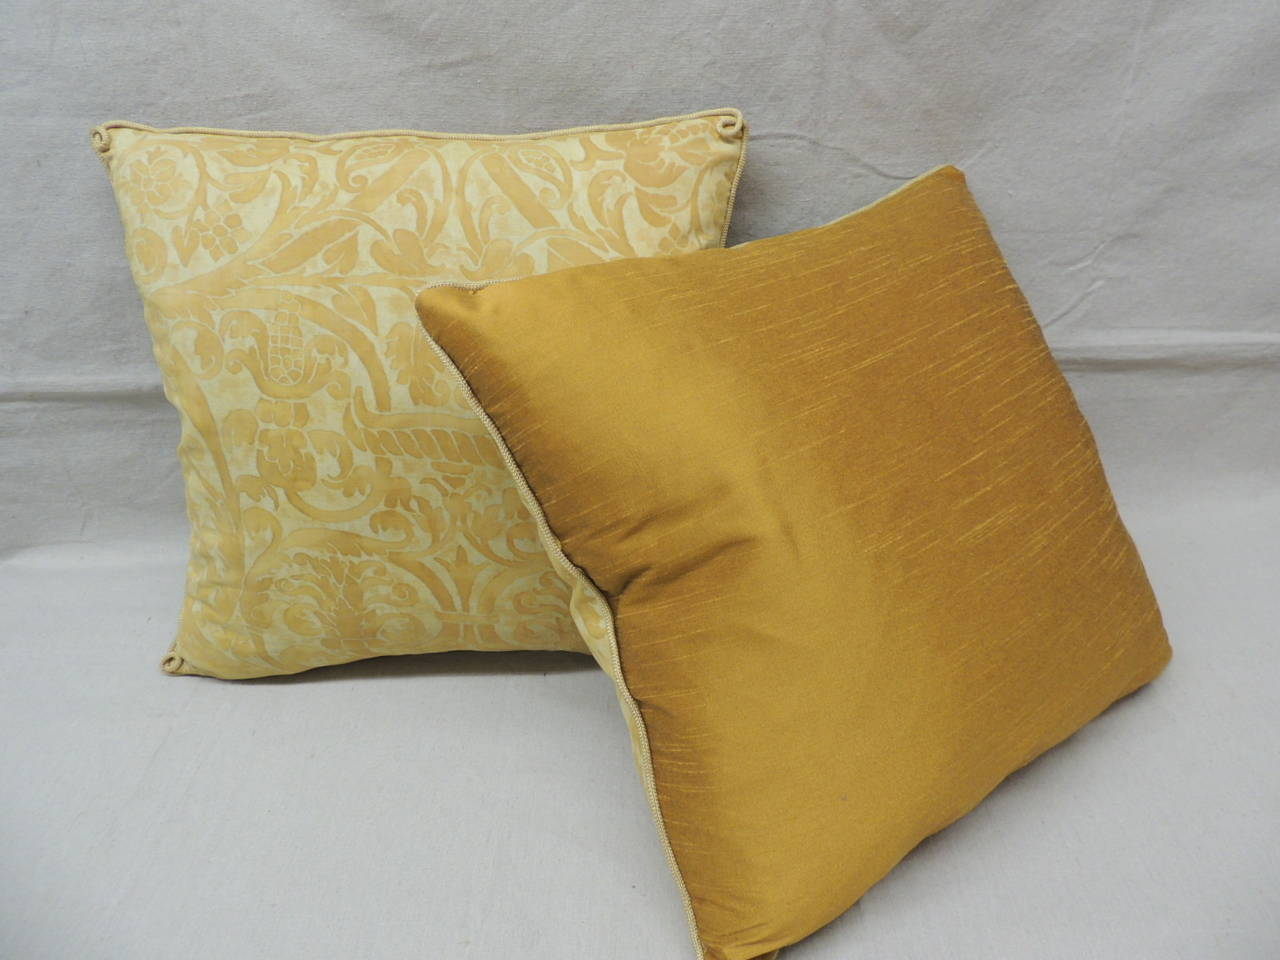 Decorative Pillow Trim : Pair of Yellow Uccelli Fortuny Pillows with Decorative Rope Trim at 1stdibs